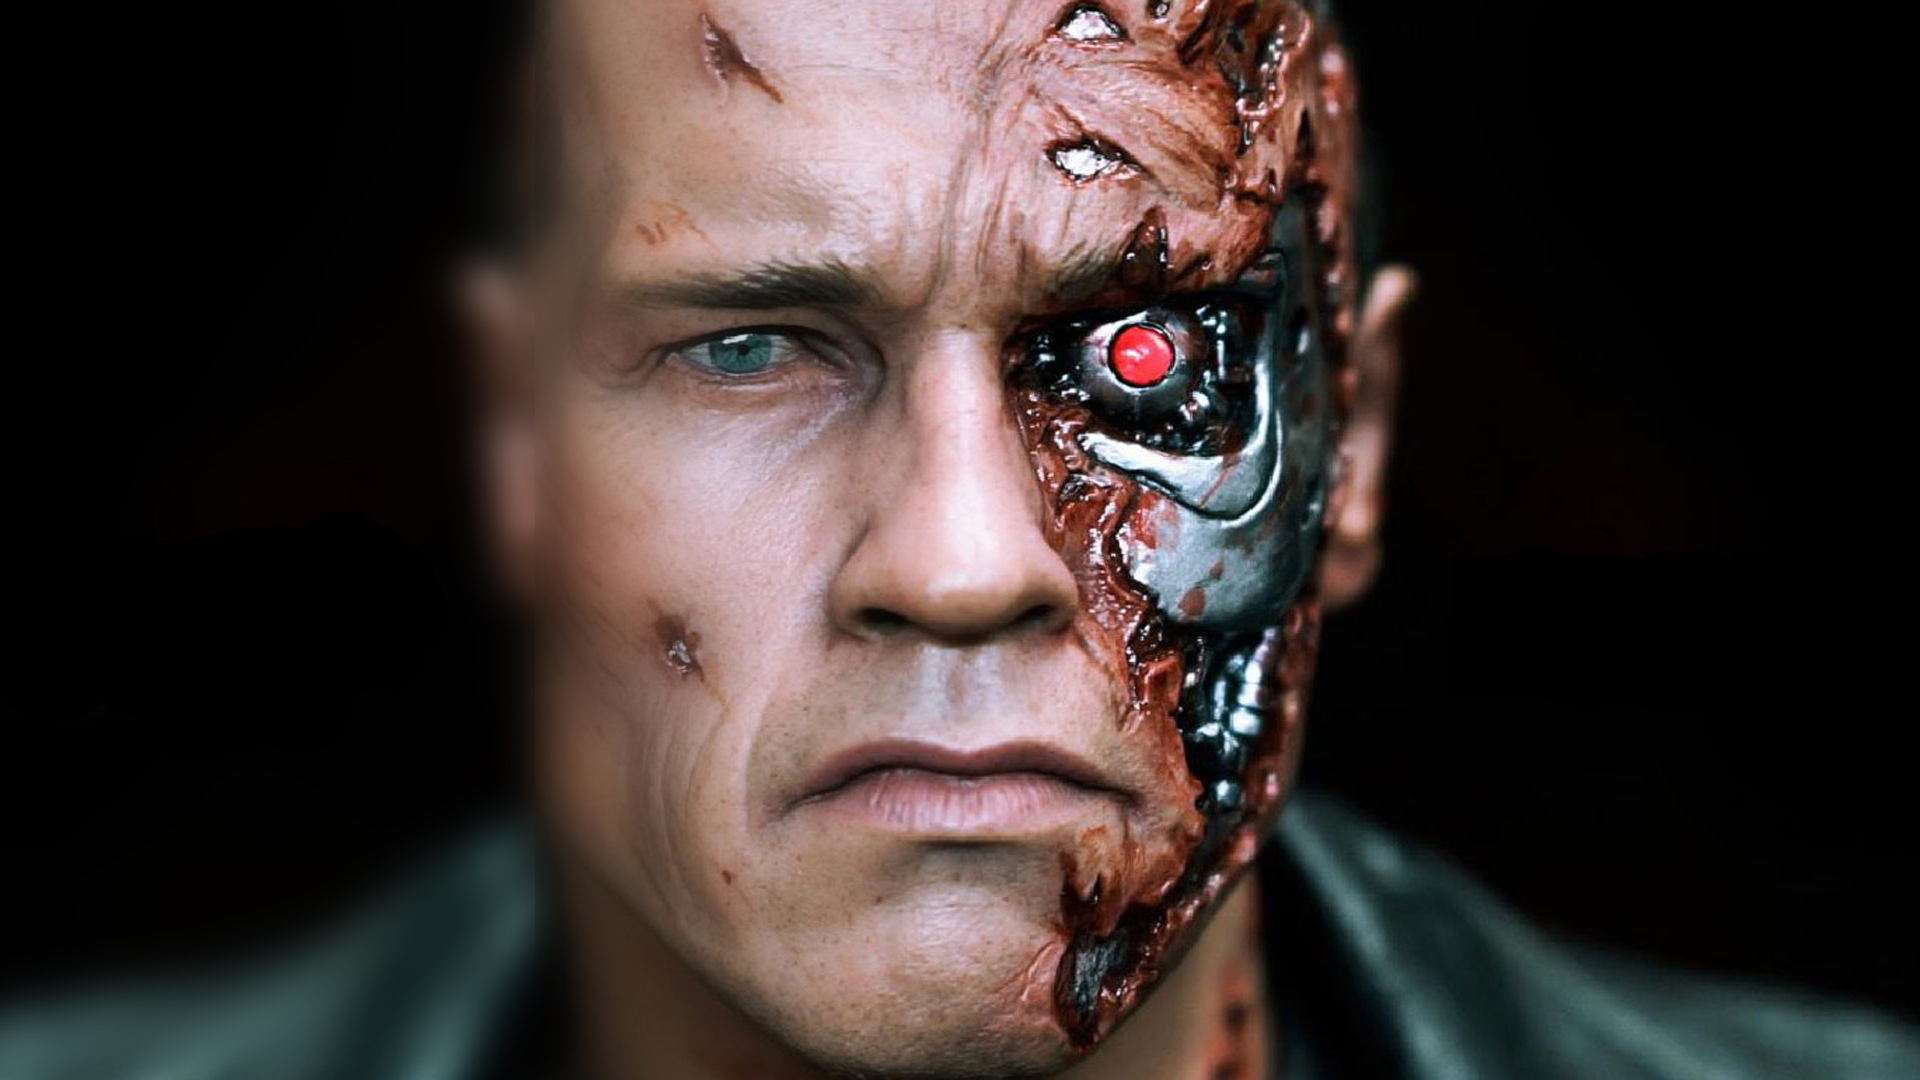 HQ Terminator Wallpapers | File 509.06Kb